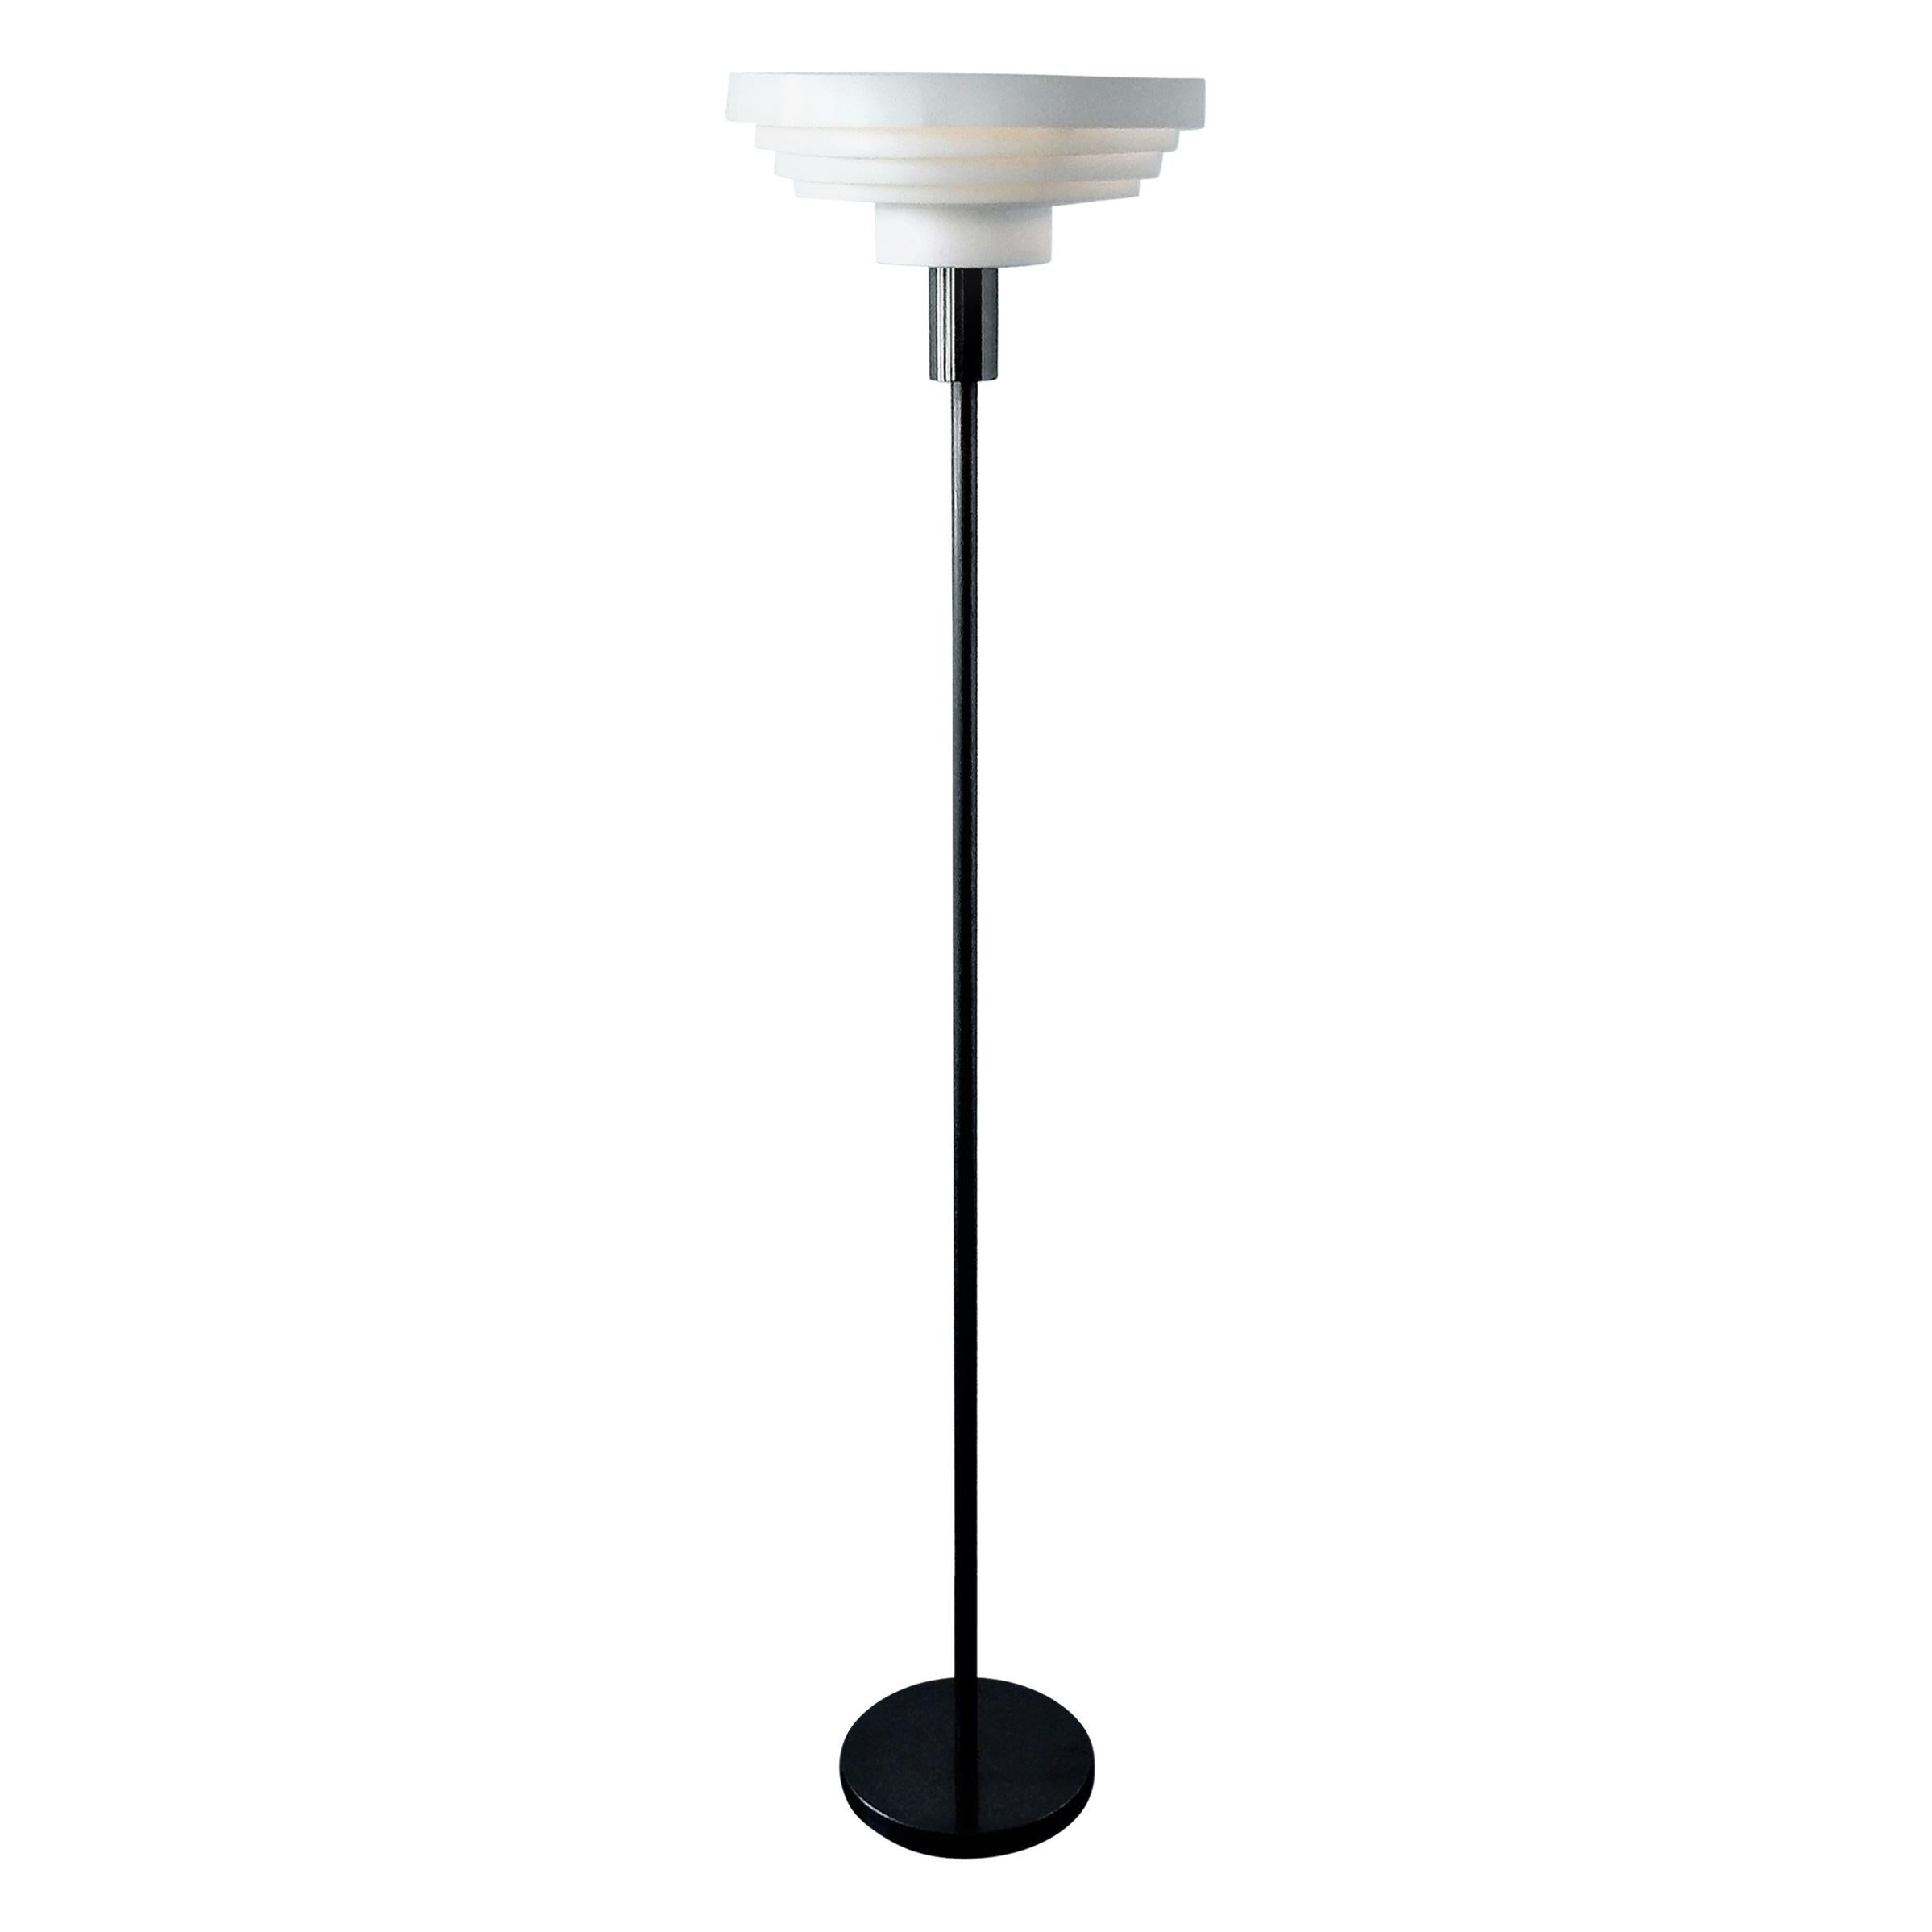 Vintage Floor Lamp with Ringed Shade, 1970s